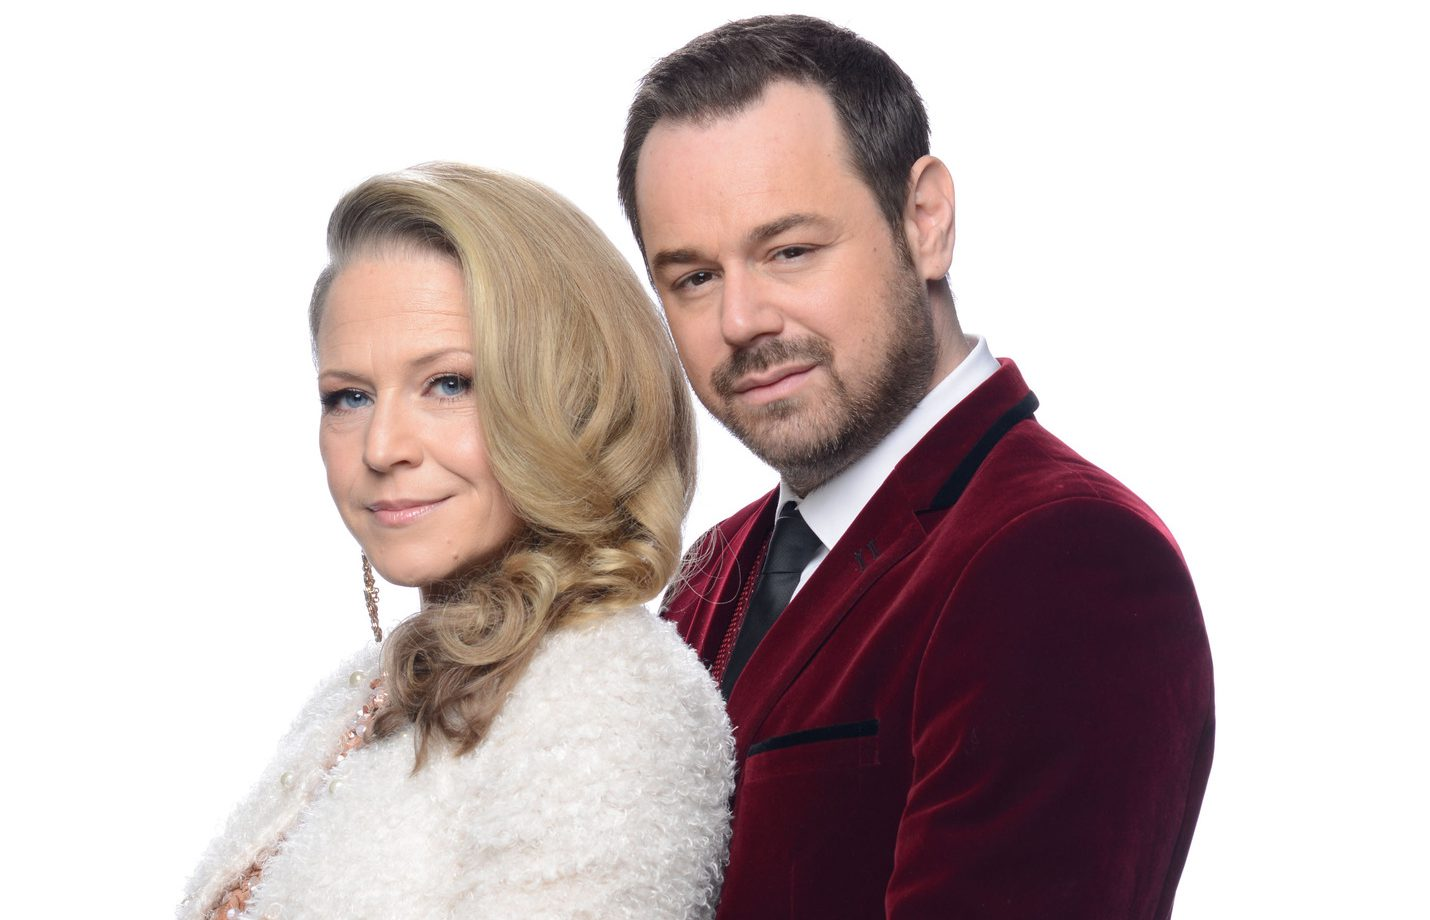 EastEnders: 6 big moments which prove Mick and Linda Carter are the strongest soap couple